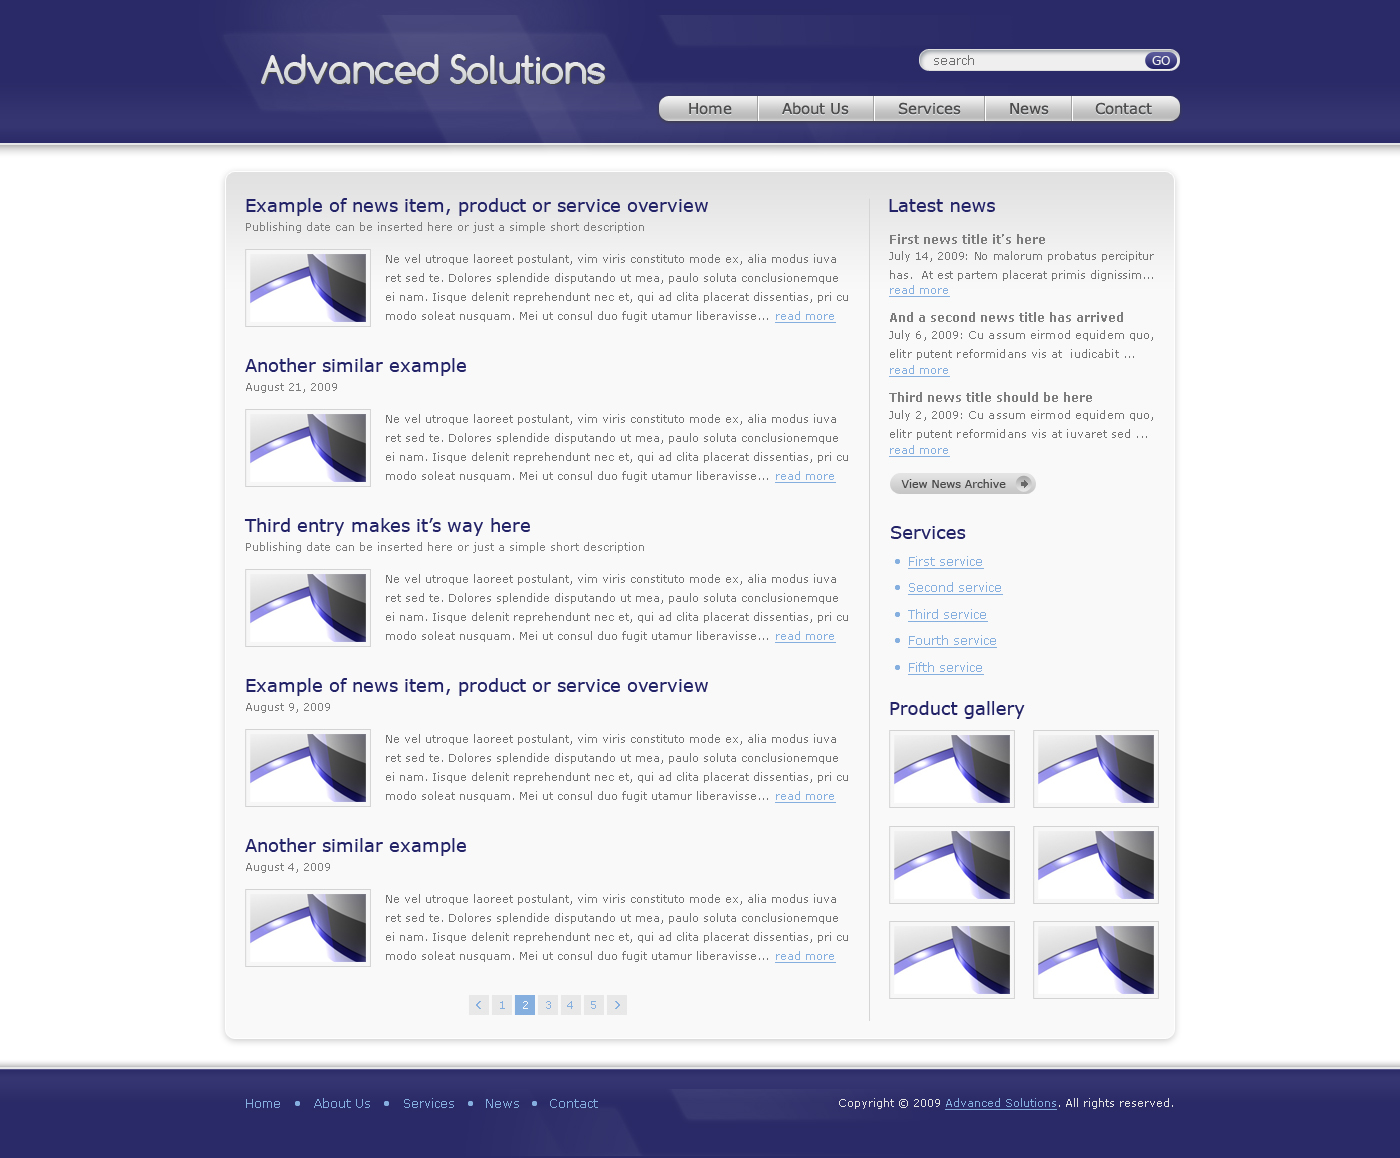 Advanced Solutions - Professional Business Theme - Here we have the item list page of Advanced Solutions template - blue theme version. In contains a list of items with image, item title, item title description/date and preview text in the right side of the image. On the right side we have a latest news block, services list block and also a photo gallery section. The footer is simple here, contains just a menu and copyright text.